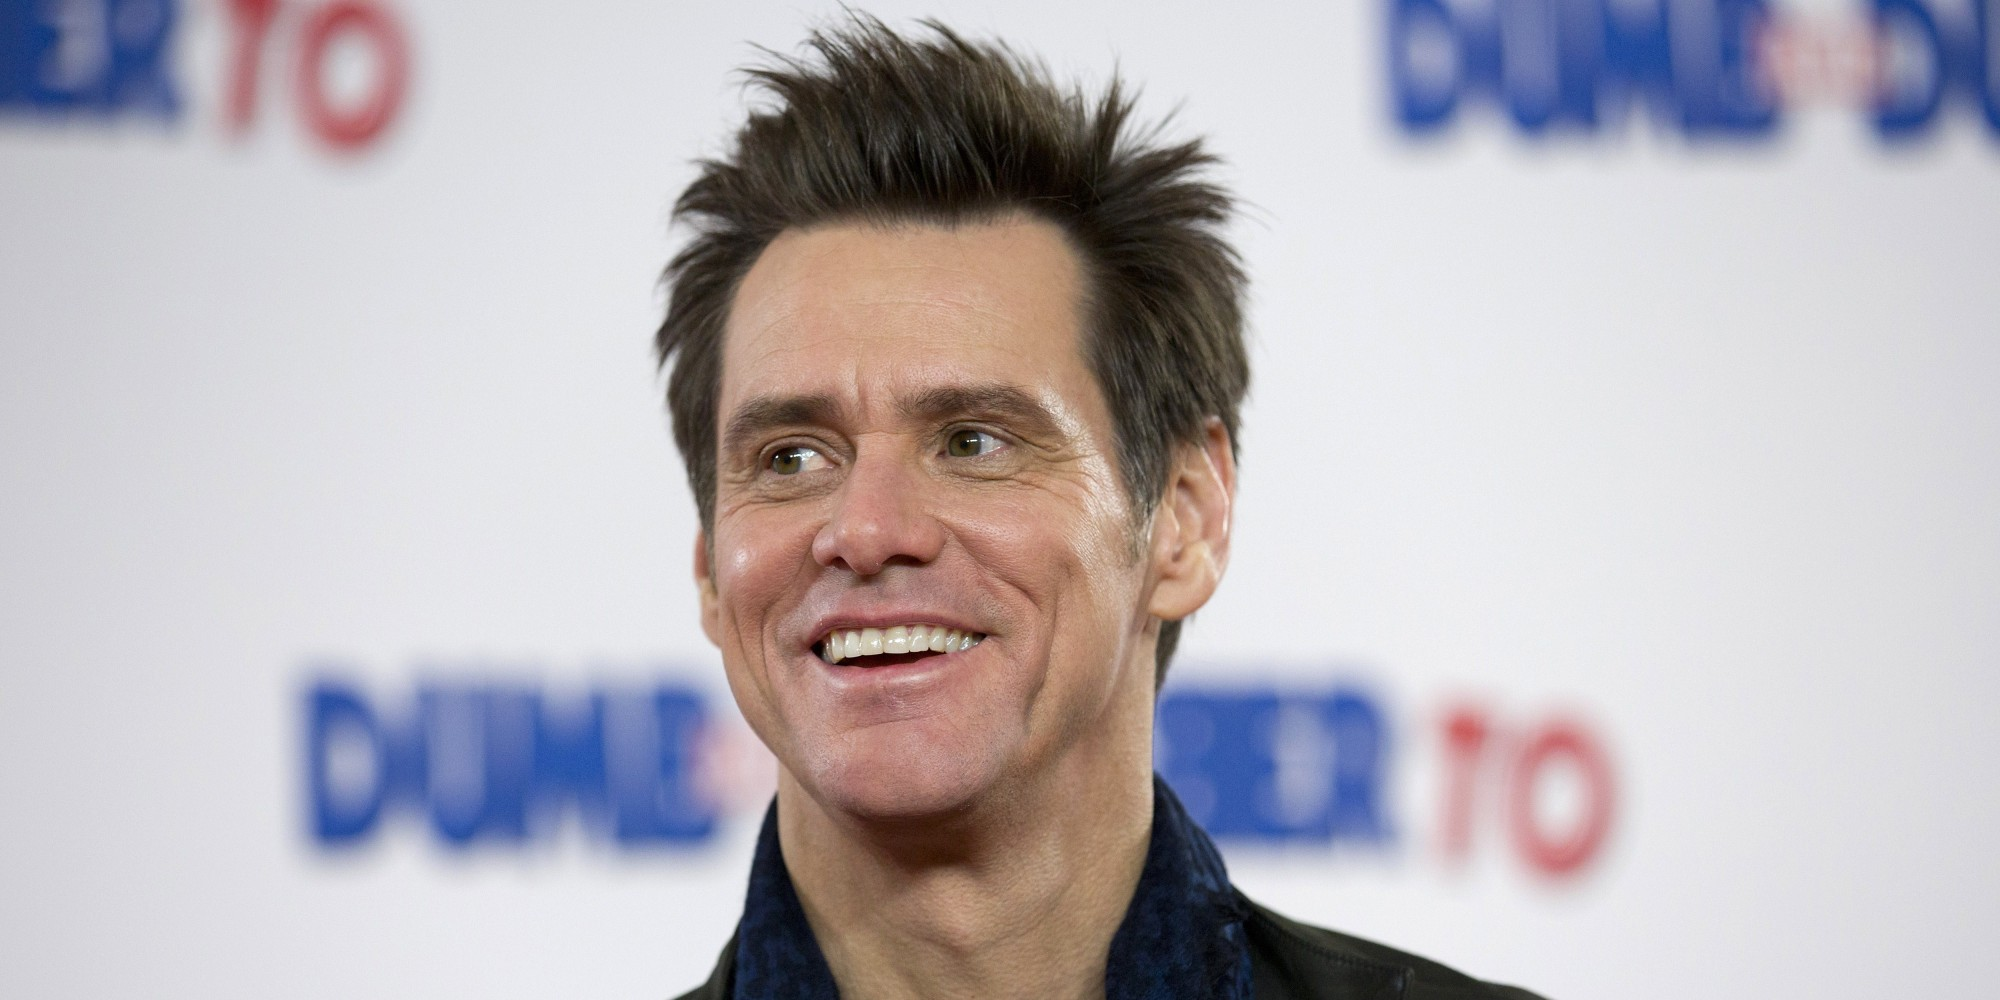 Jim Carrey at Sonic the Hedgehog's new trailer -